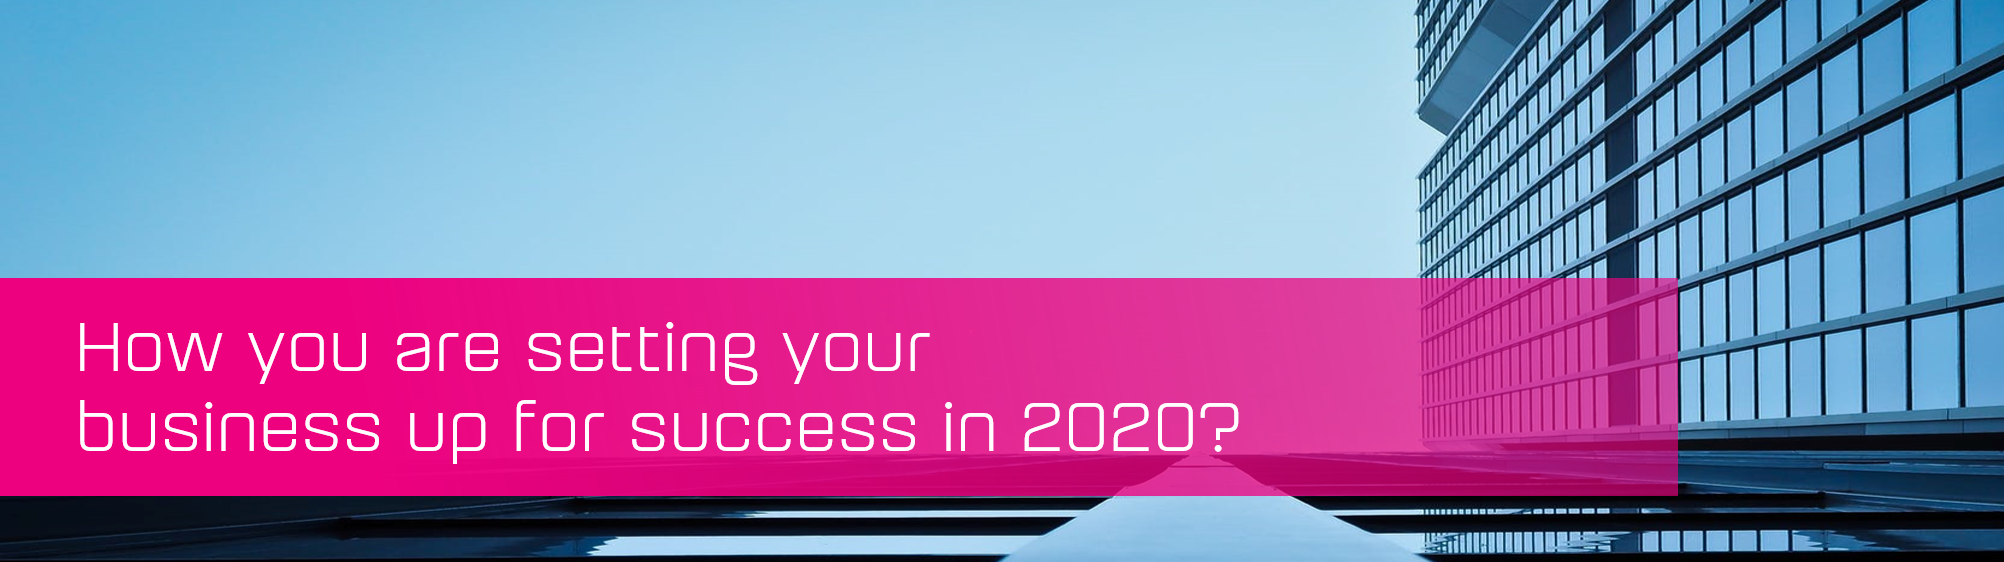 KCS SA - Blog - Business Success 2020 banner image